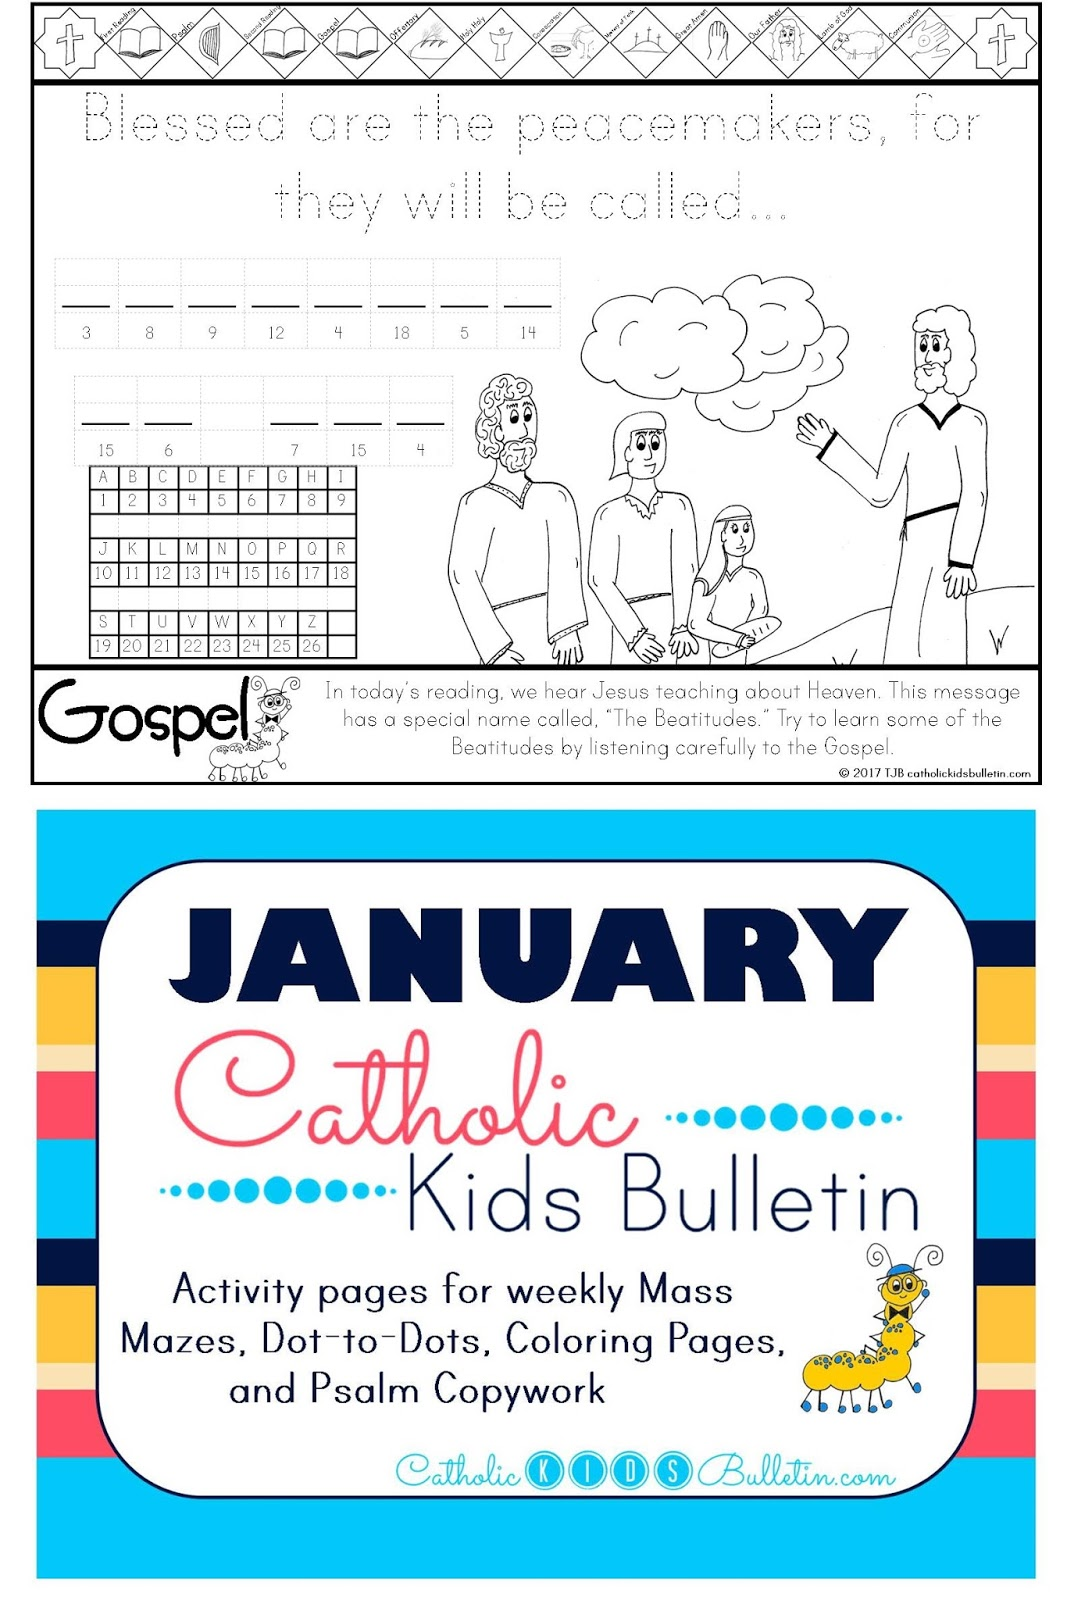 5 Beatitudes Matthew 5.1-12 Coloring Page Catholic Kids Bulletin